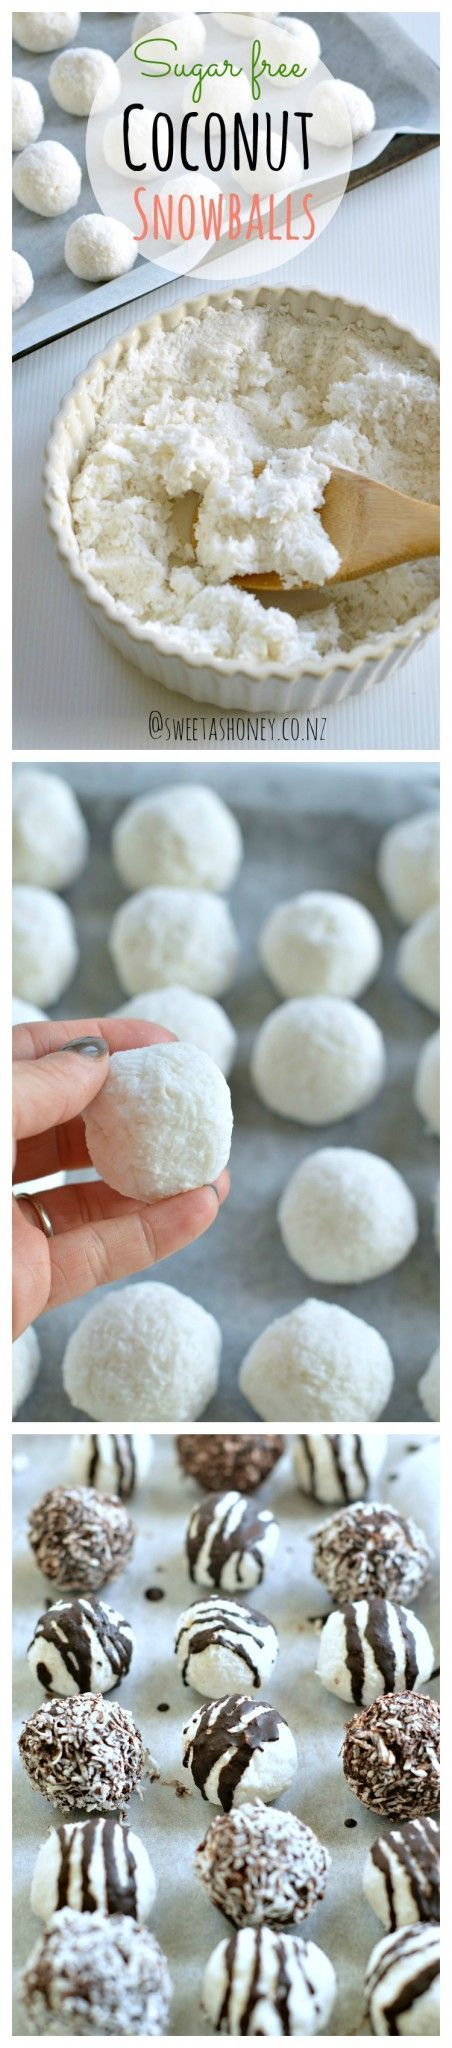 I am making those healthier treat for Christmas this year. Sugar free coconut snowballs and gluten free such a guilt free treat!